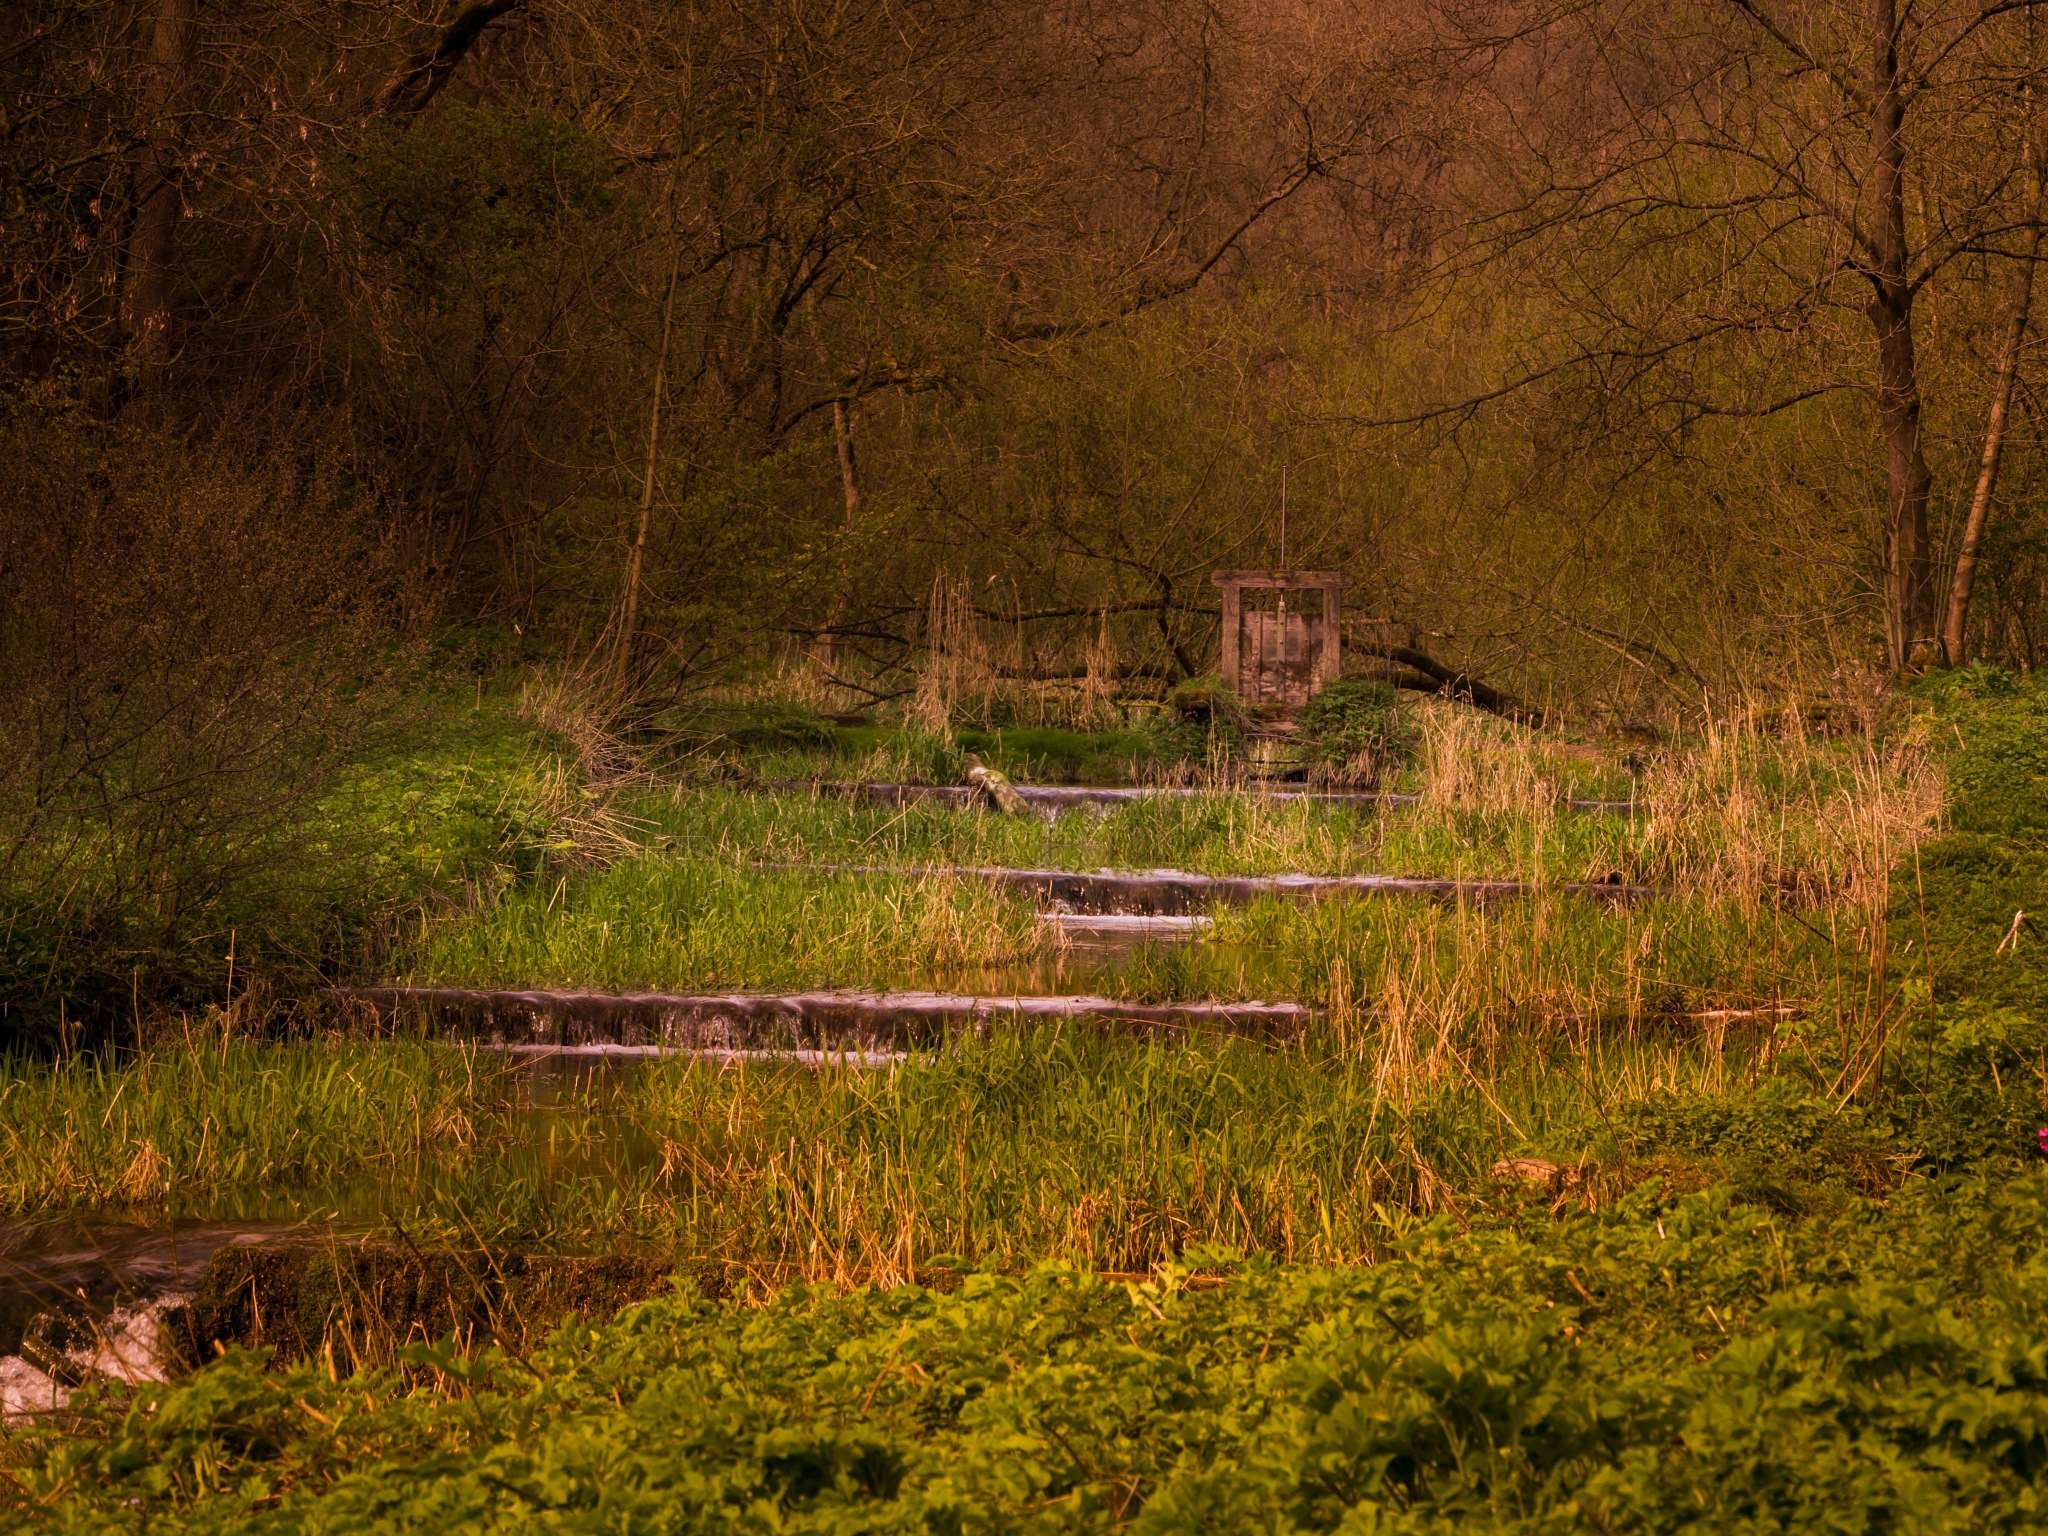 Lathkill Dale by draycottphotography